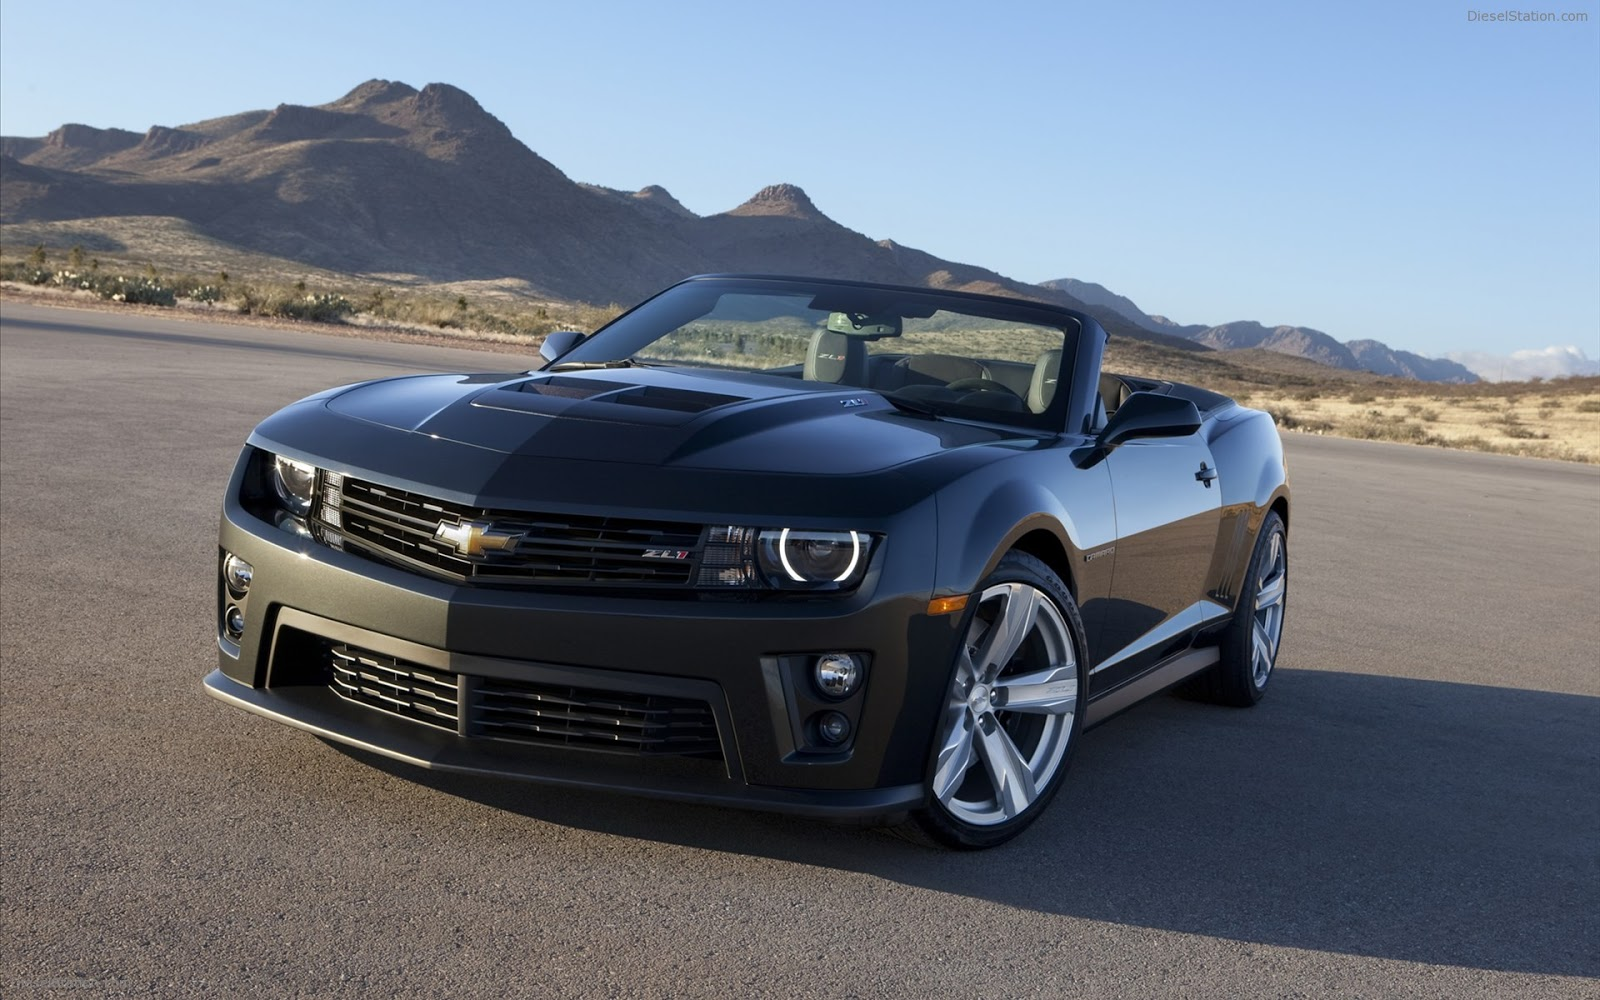 Chevy Camaro 2013 Chevrolet Zl1 Convertible Photo - Medium